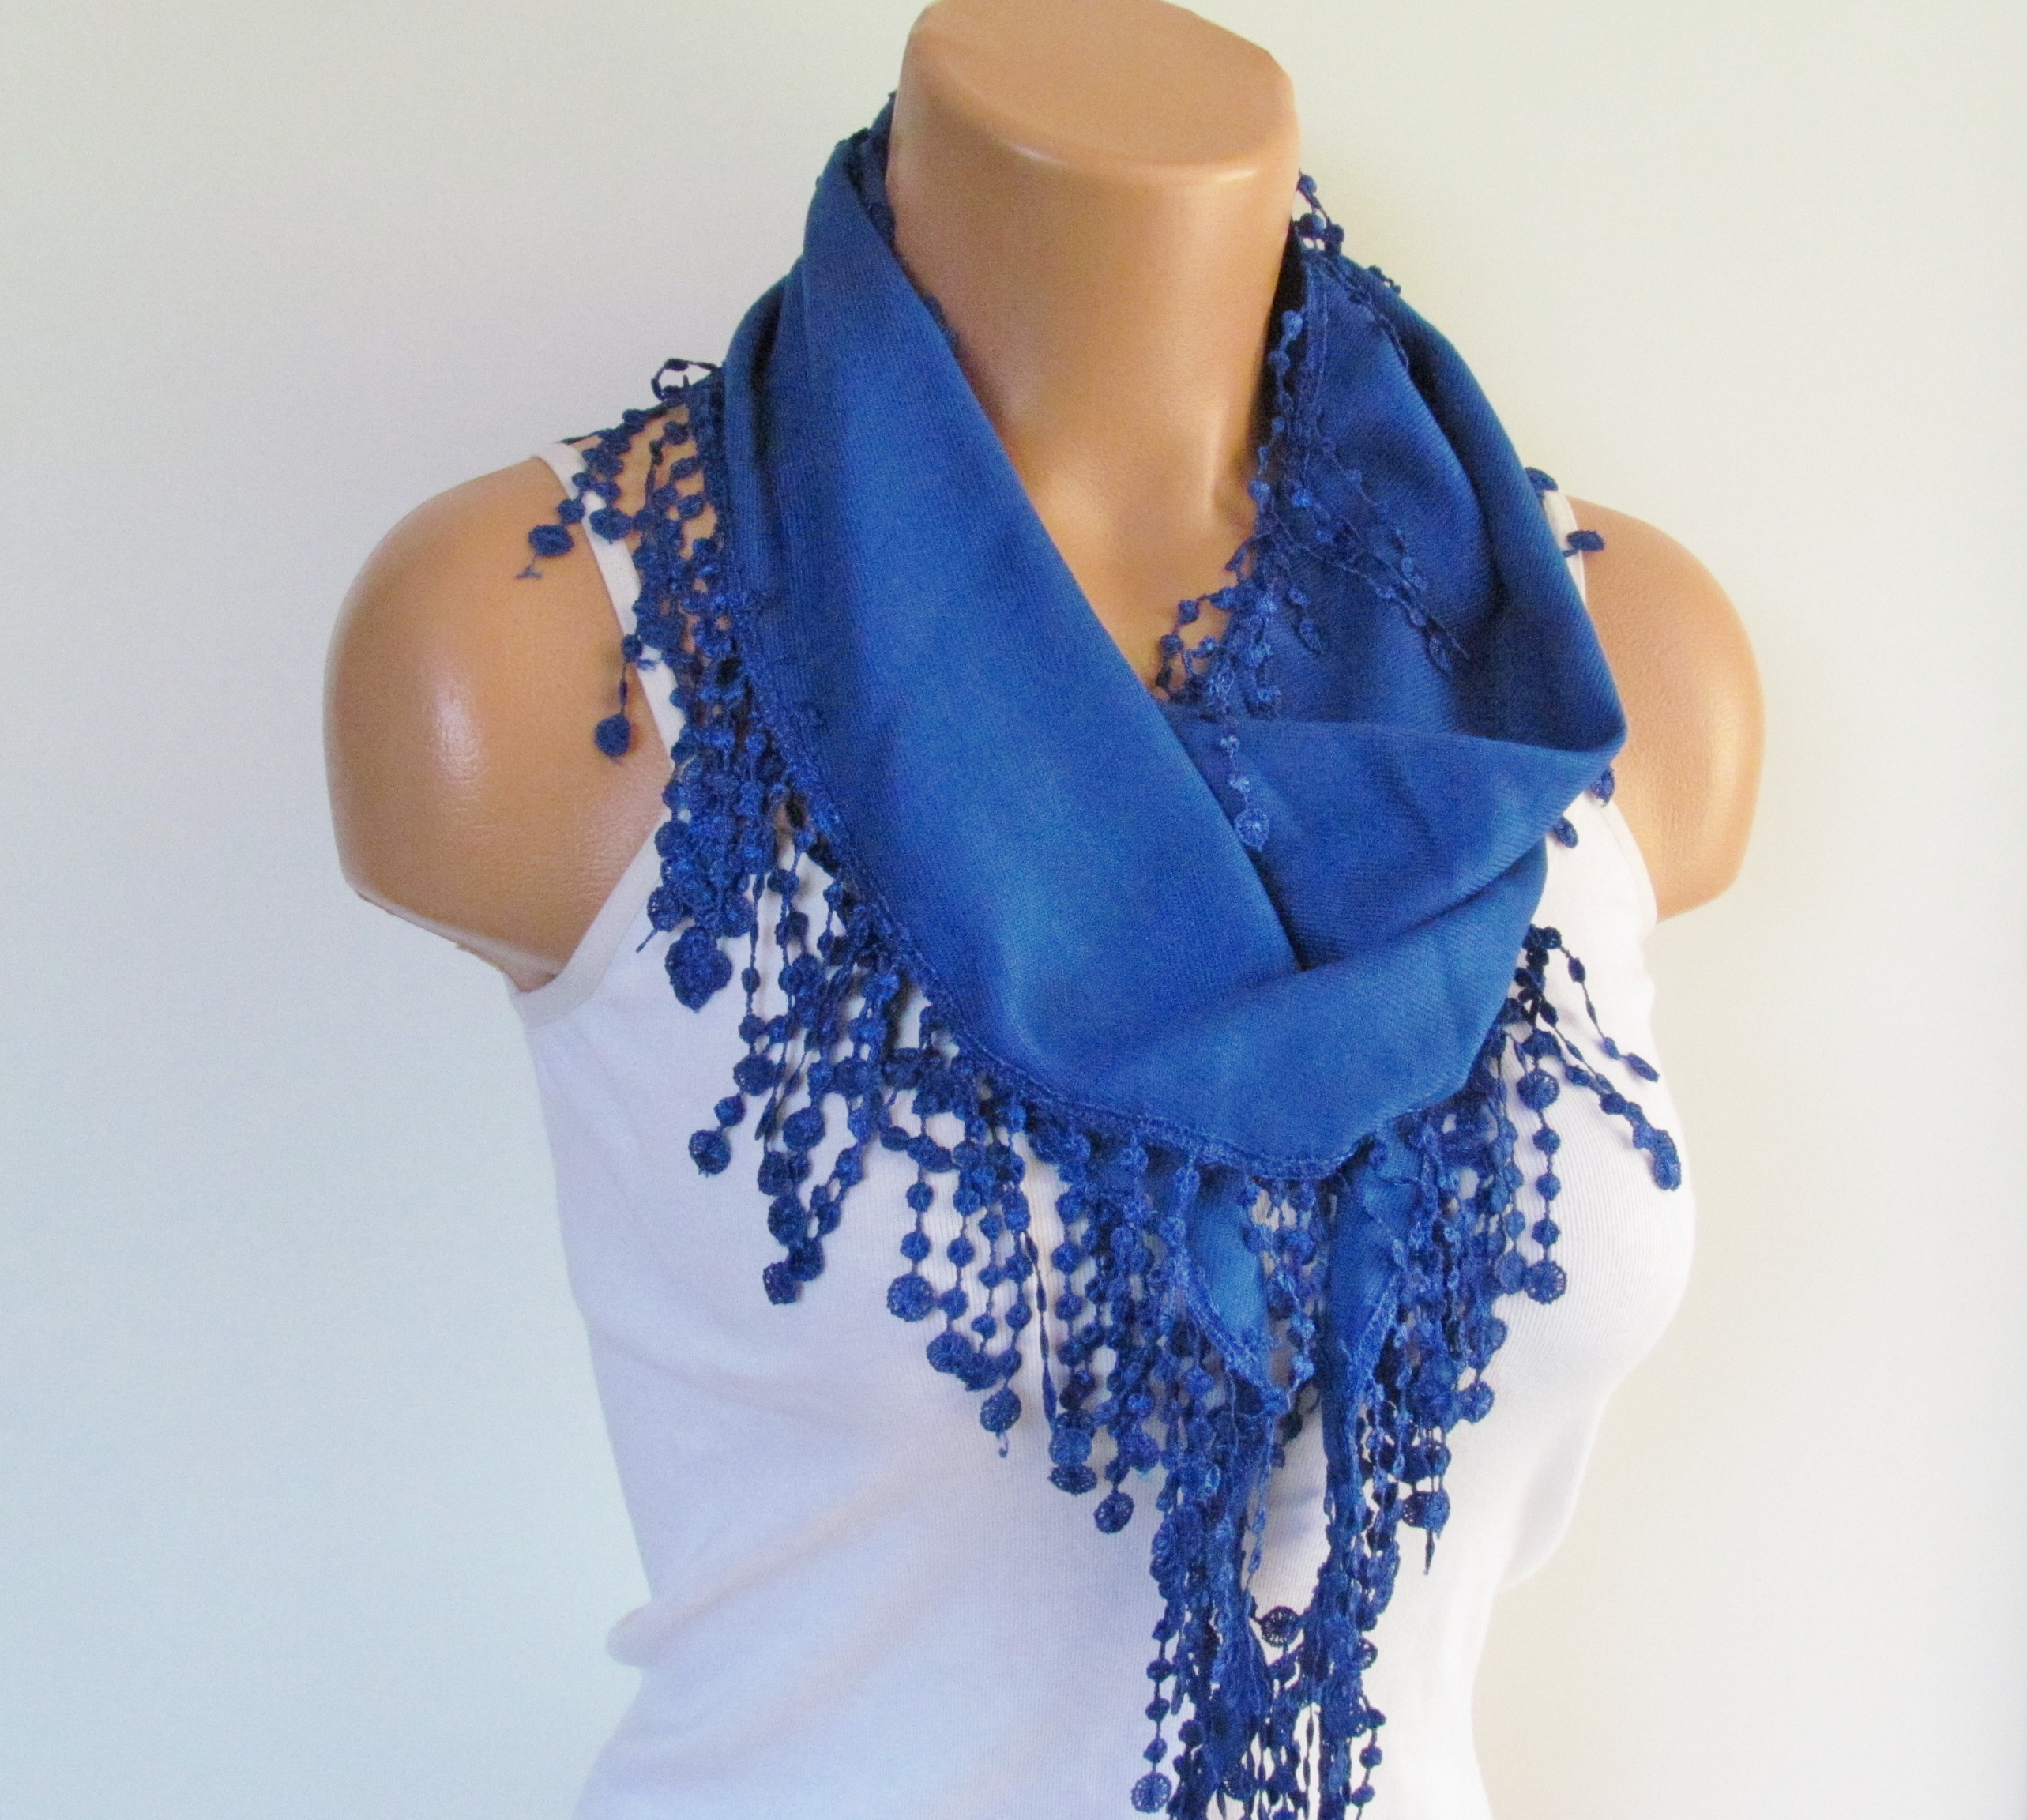 f7713f047e410 Navy Blue Pashmina Scarf With Fringe-Long Scarf-Fall Fashion Scarf-Headband- Necklace- Infinity Scarf on Luulla